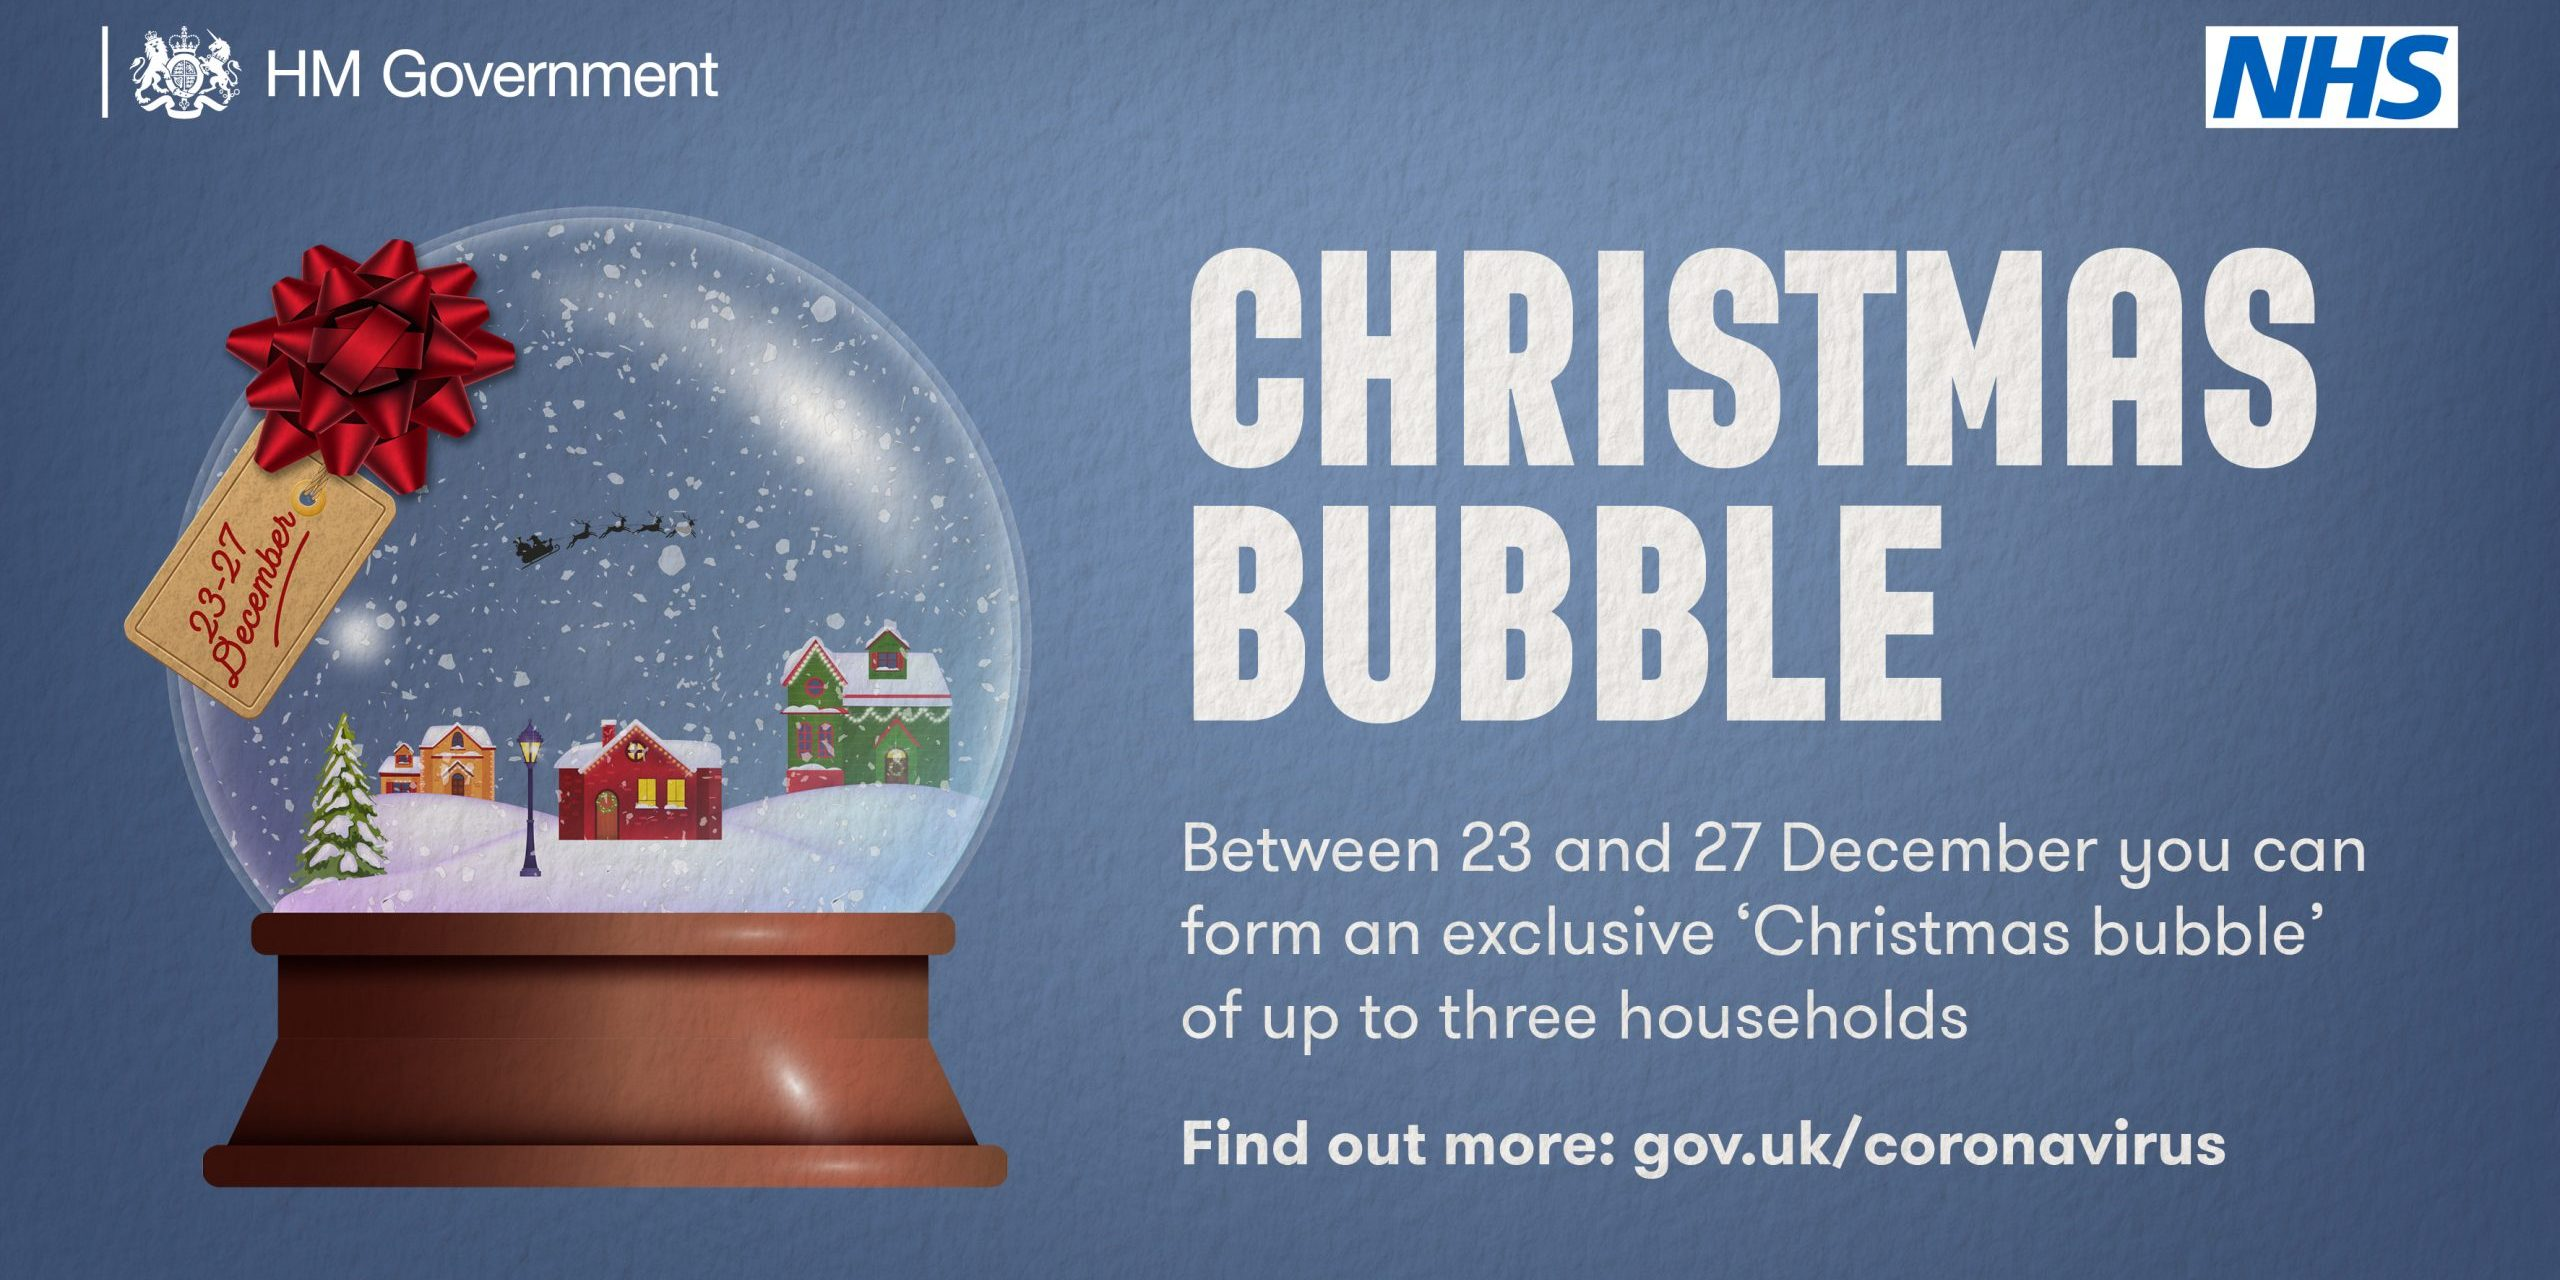 Coronavirus Update: Christmas Bubbles